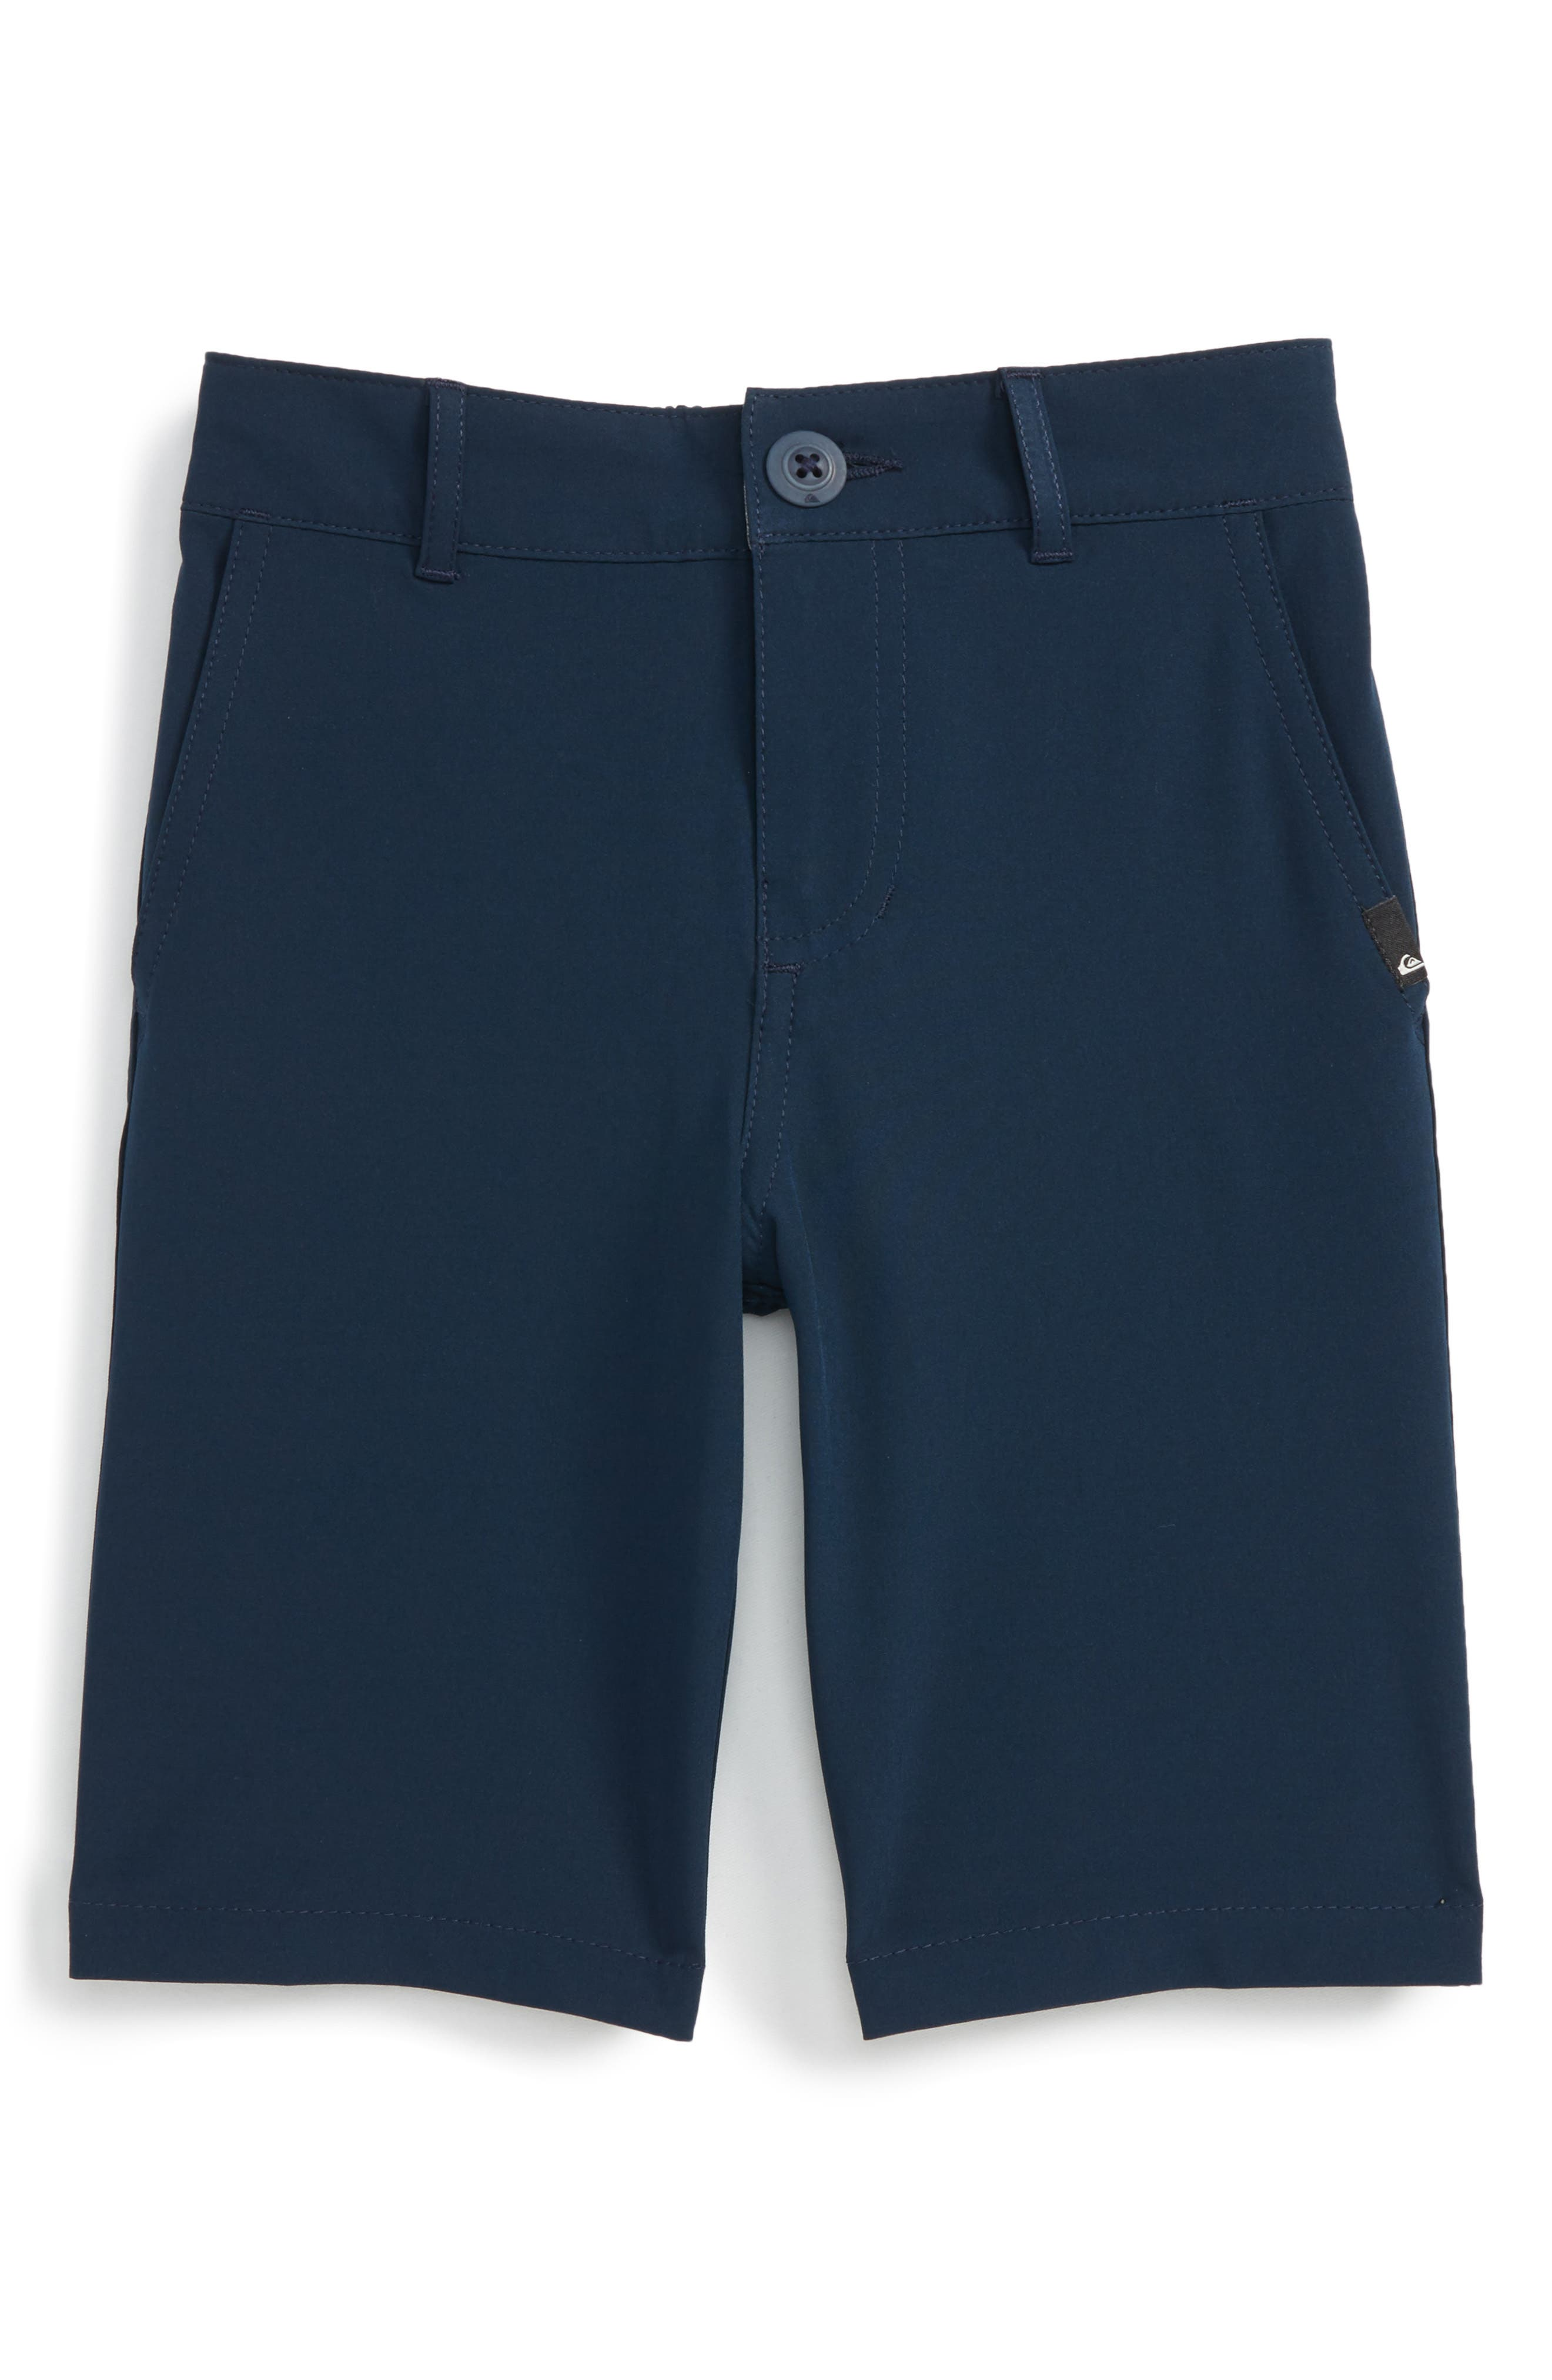 Amphibian Hybrid Shorts,                         Main,                         color, Navy Blazer